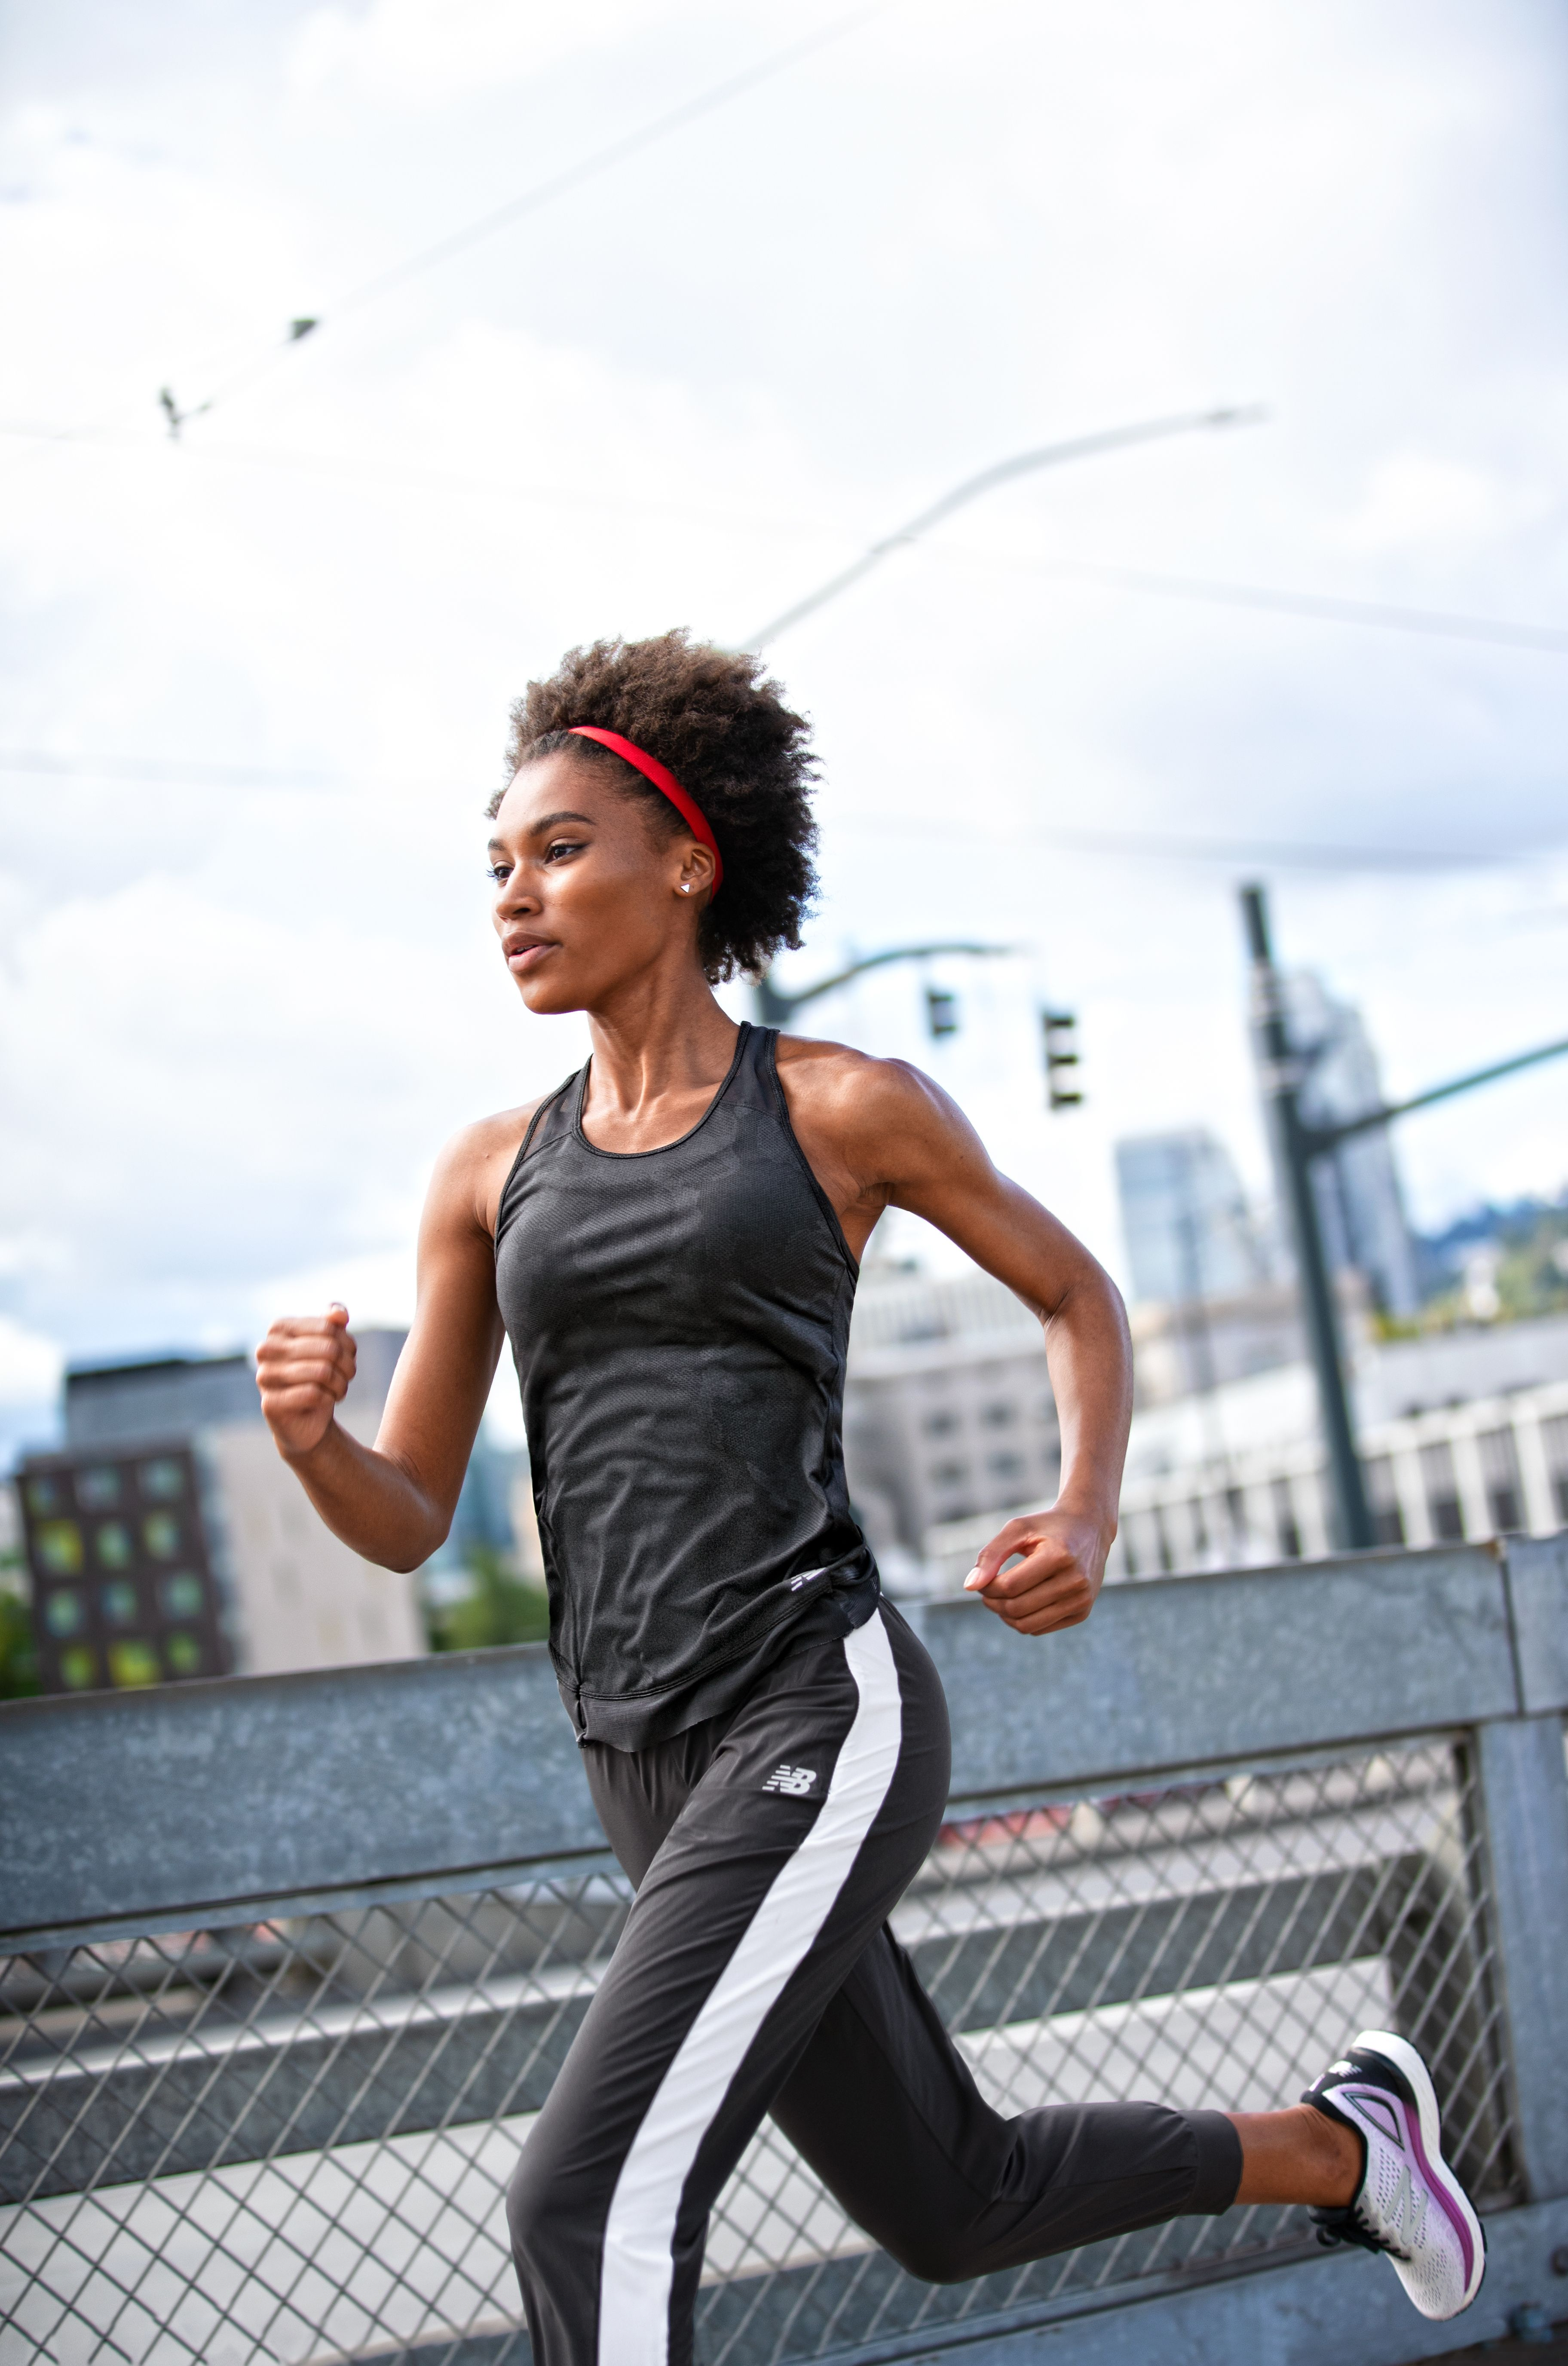 59c419bbf0d70 Breathe easy when your run heats up in the women's Q Speed Breathe Tank.  Built for superior ventilation, the flattering athletic fit is made with  highly ...